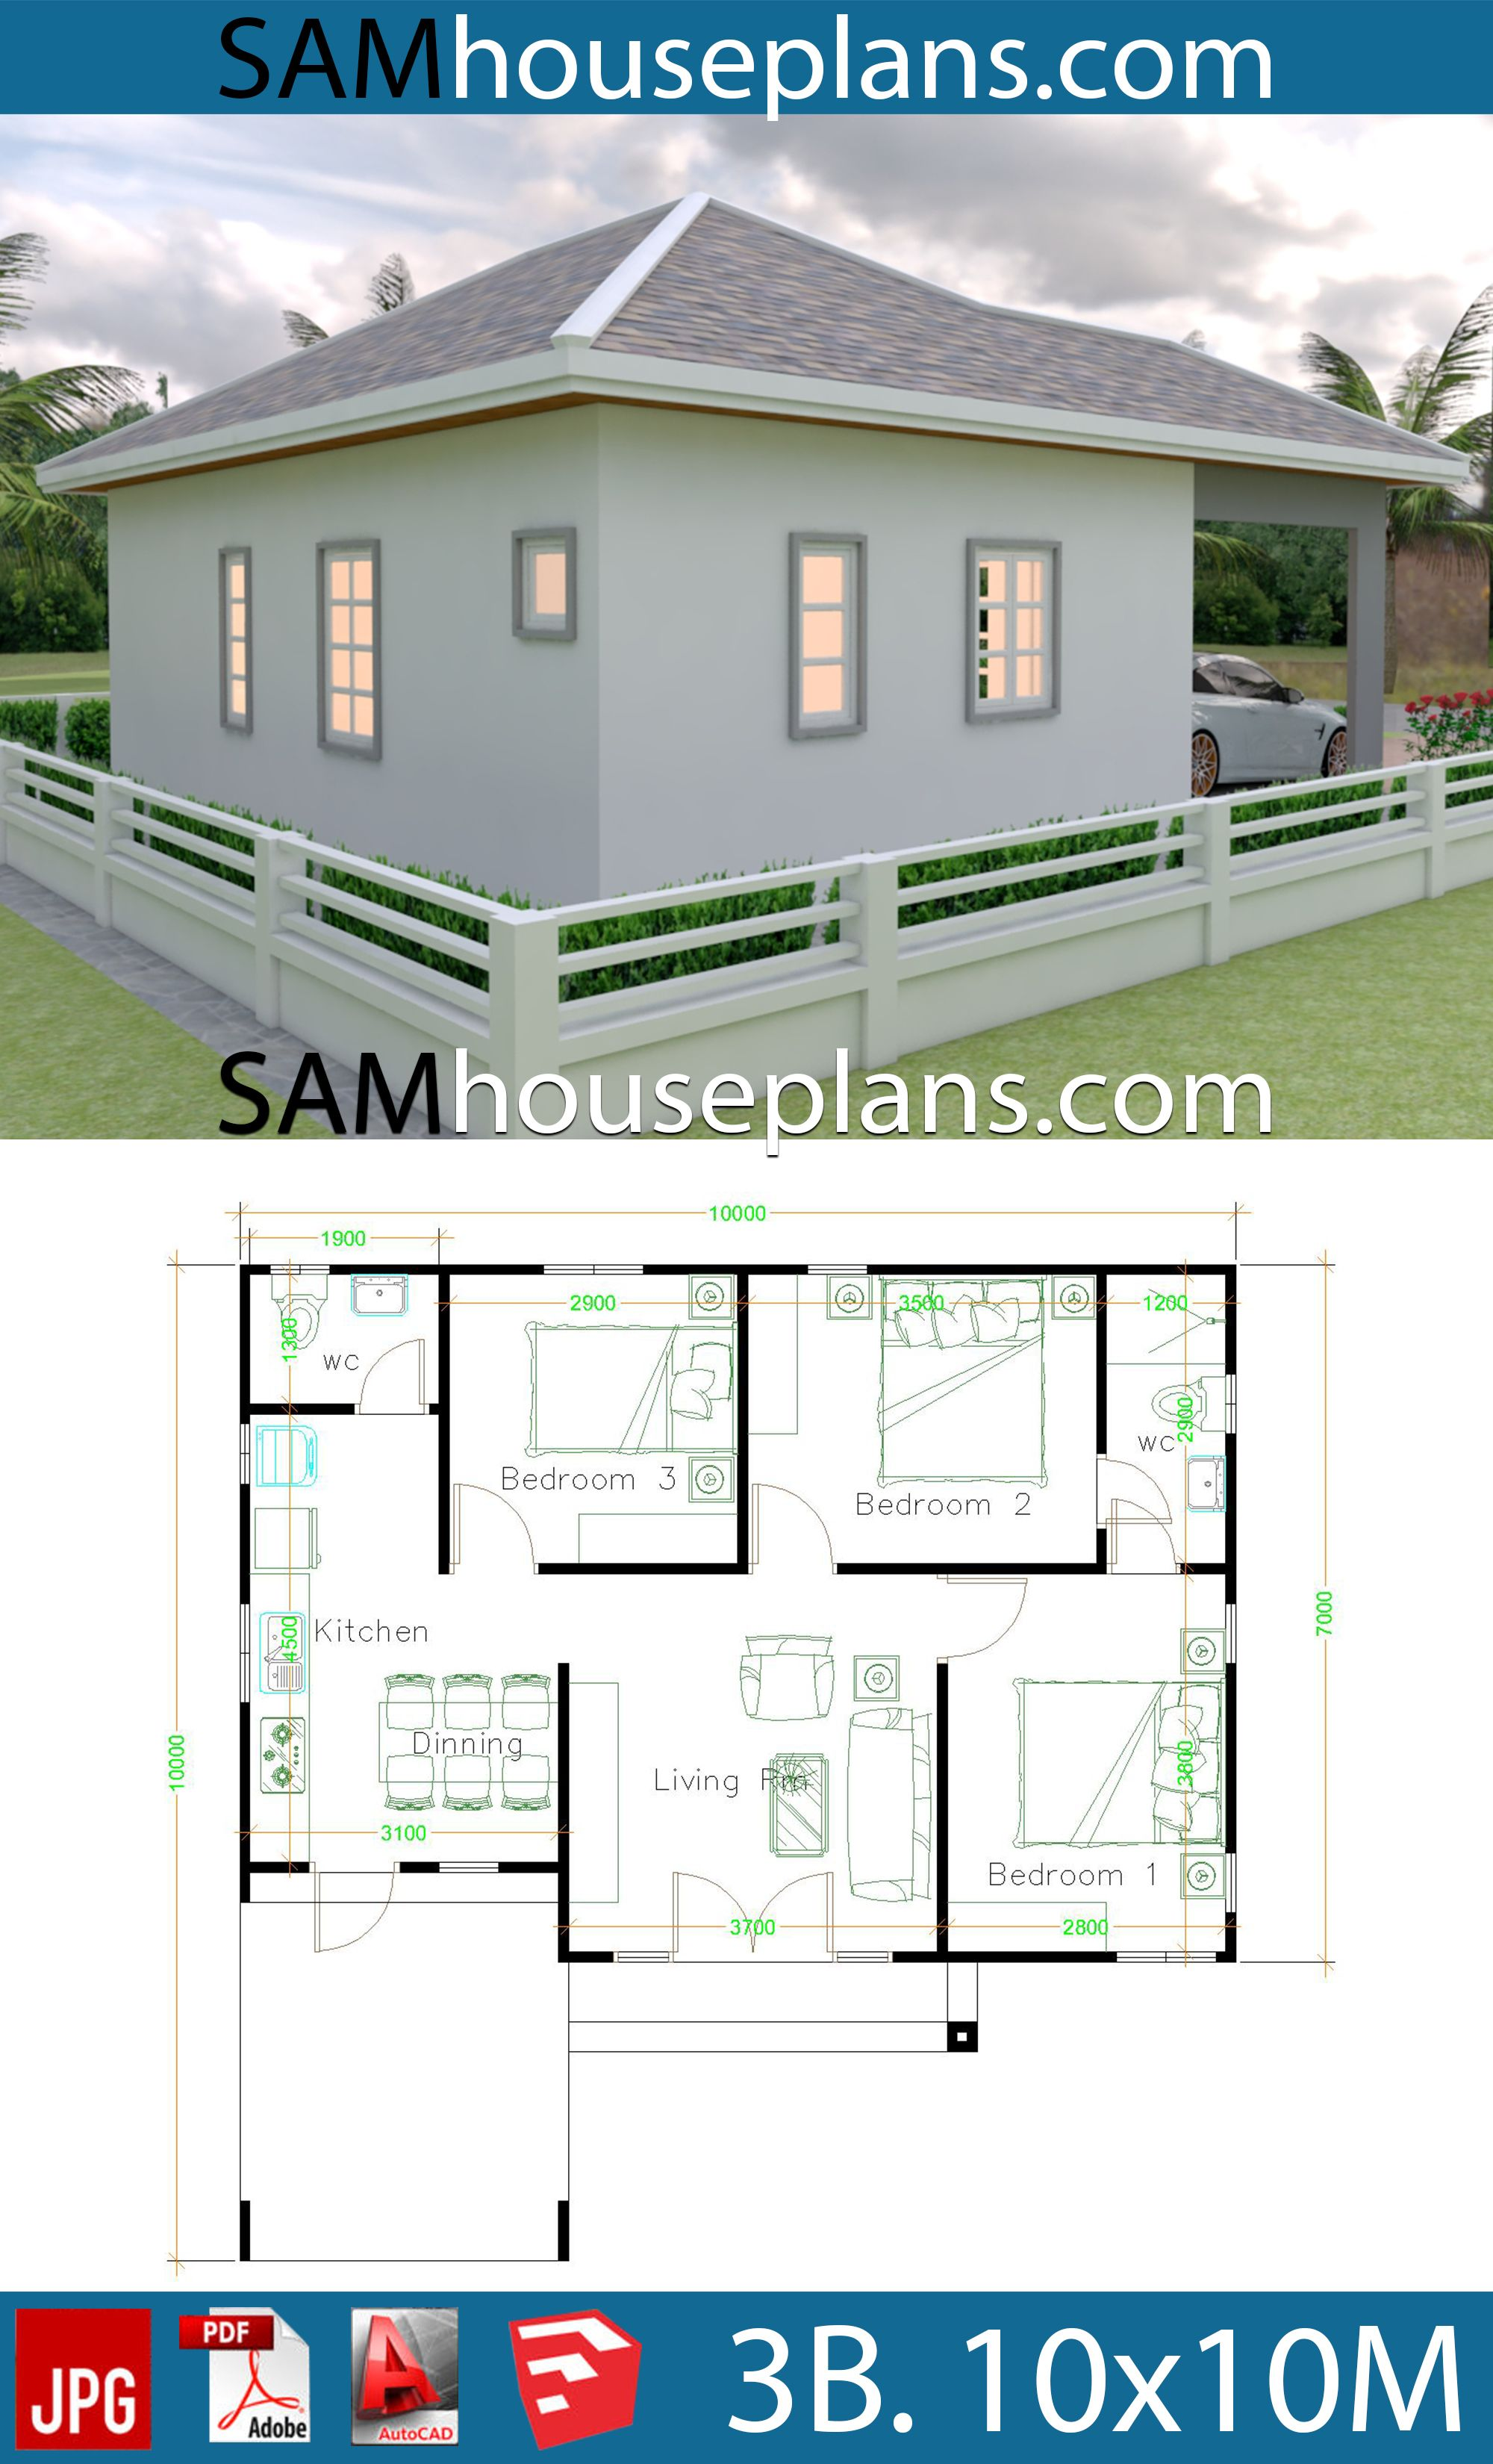 Framing A 10x10 Room: House Plans 10x10 With 3 Bedrooms (With Images)